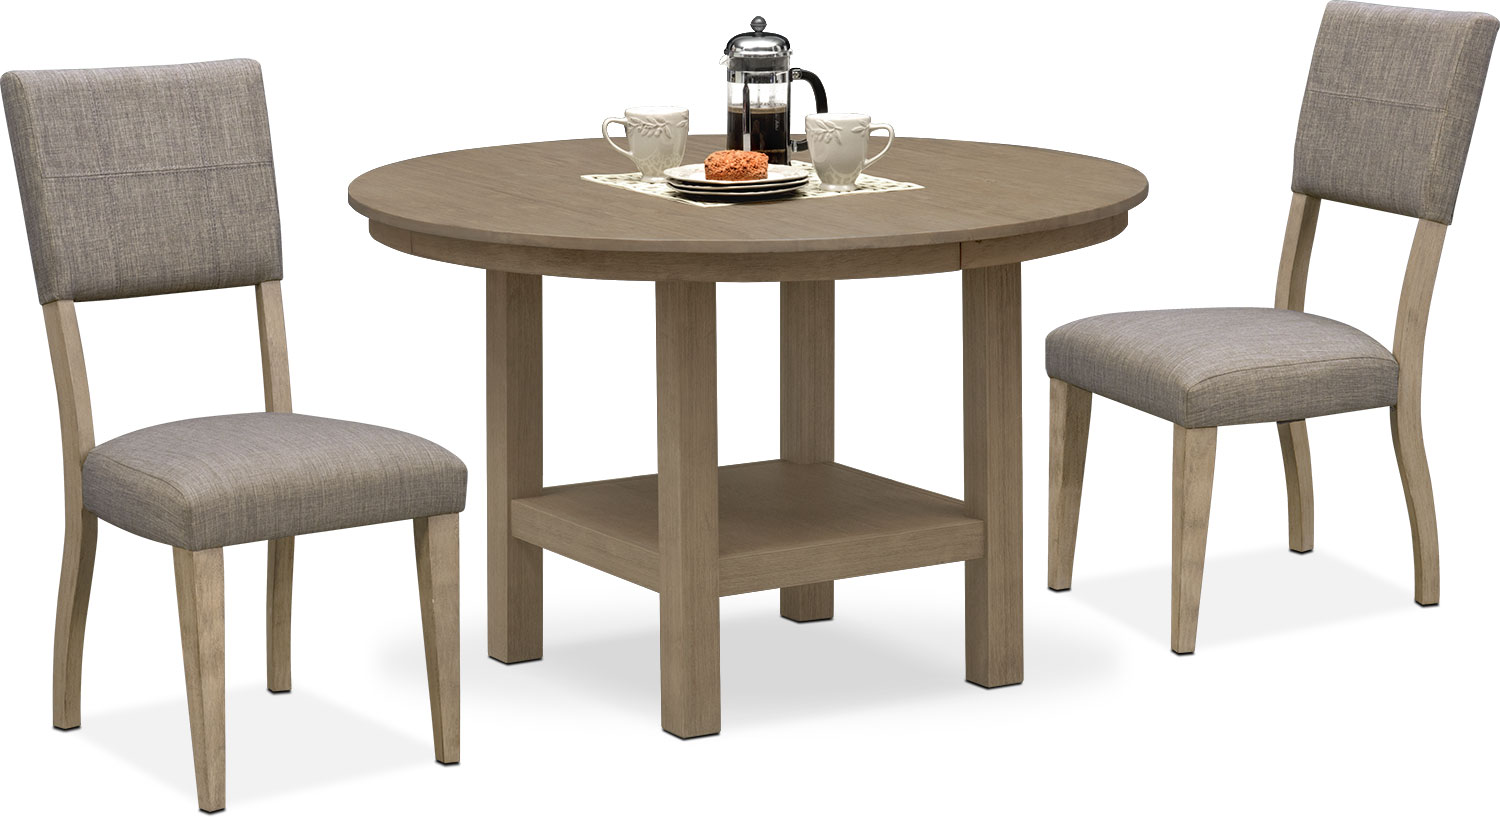 Dining Room Furniture - Tribeca Round Dining Table and 2 Upholstered Side Chairs